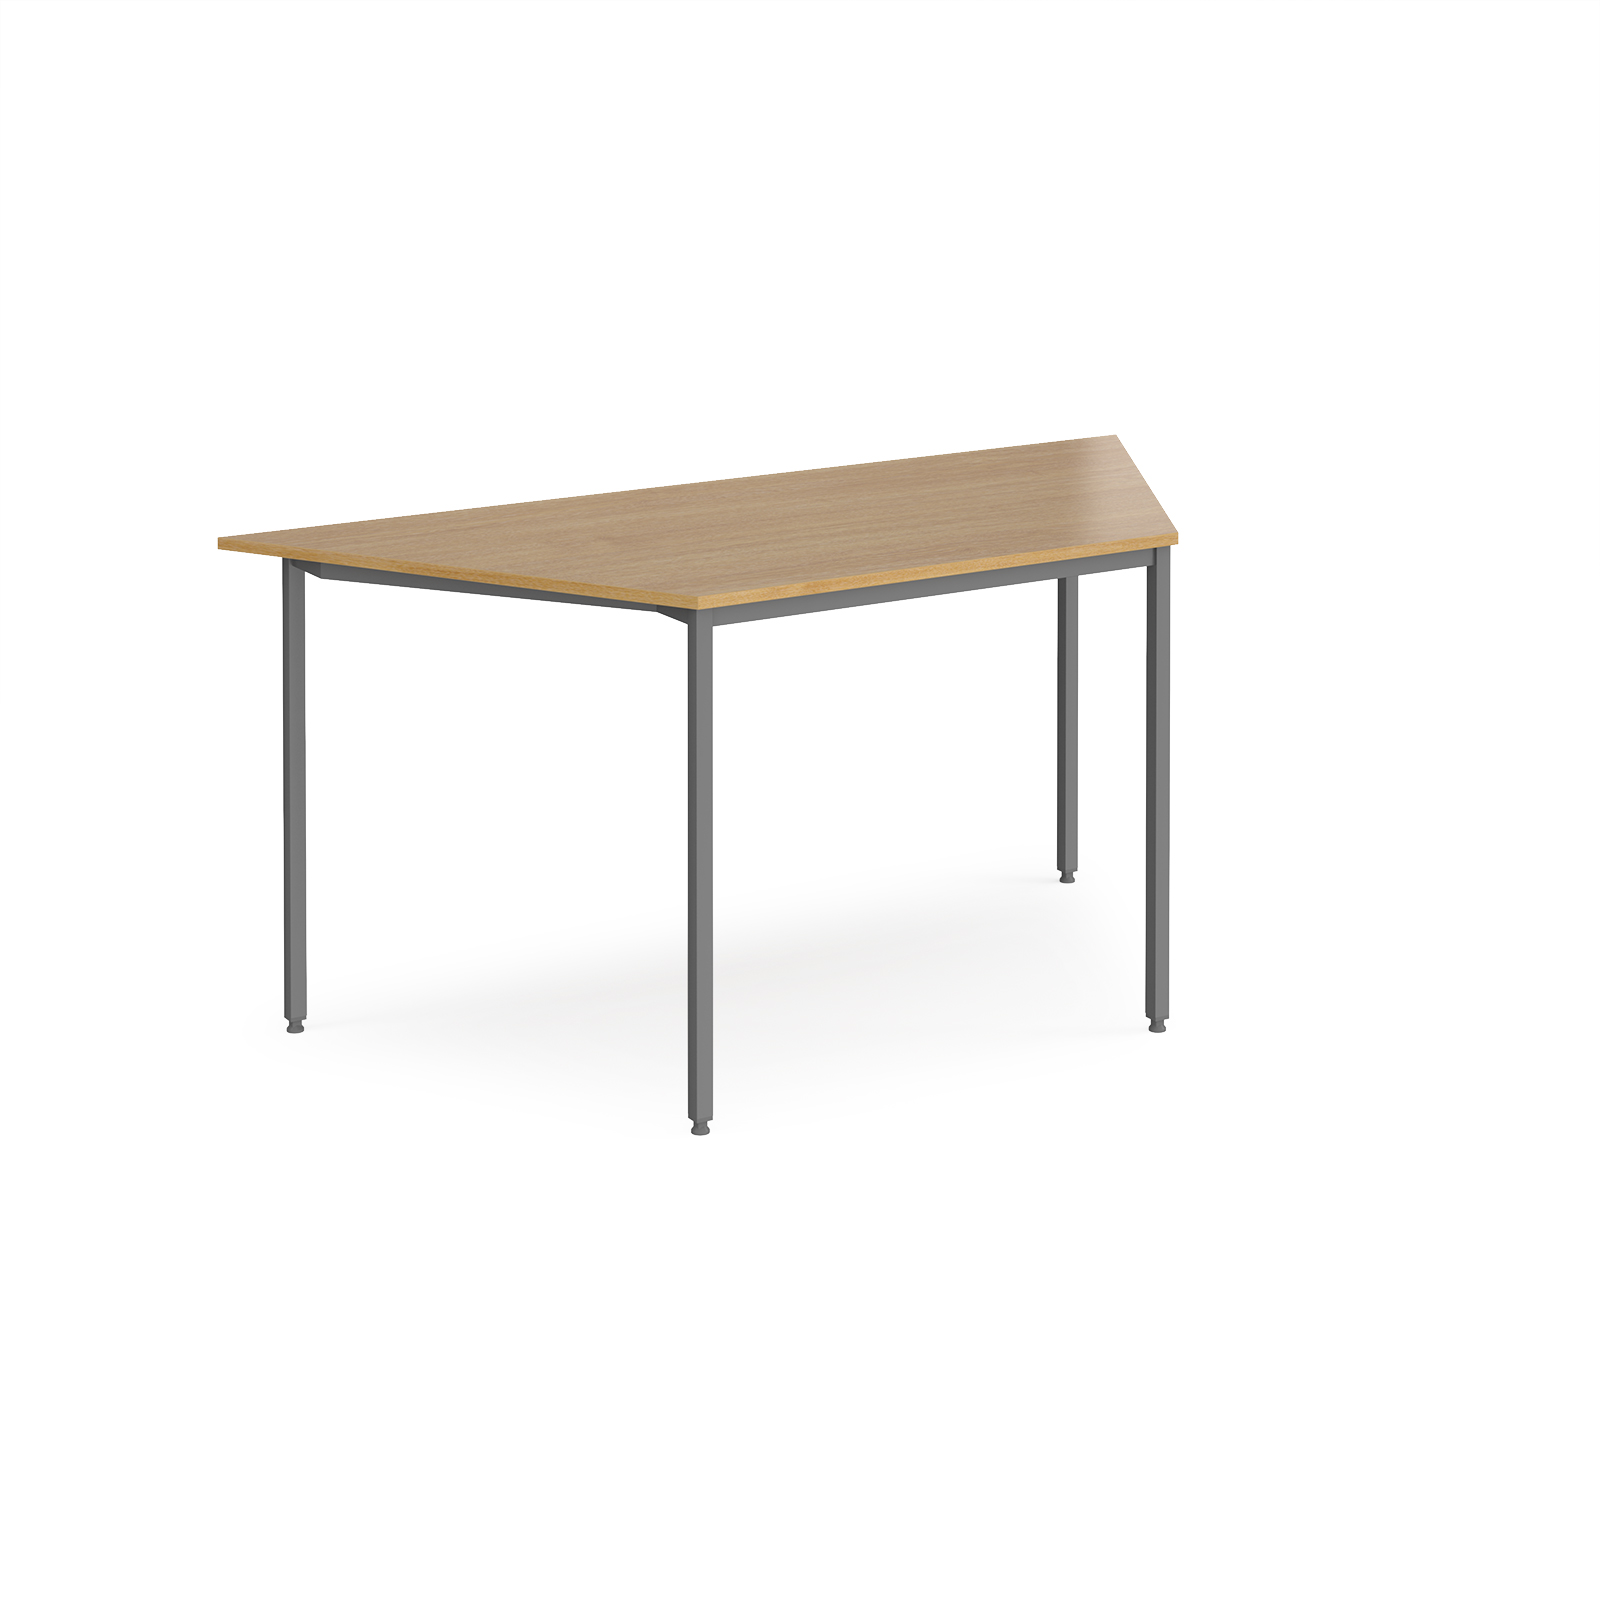 Trapezoidal flexi table with graphite frame 1600mm x 800mm - oak